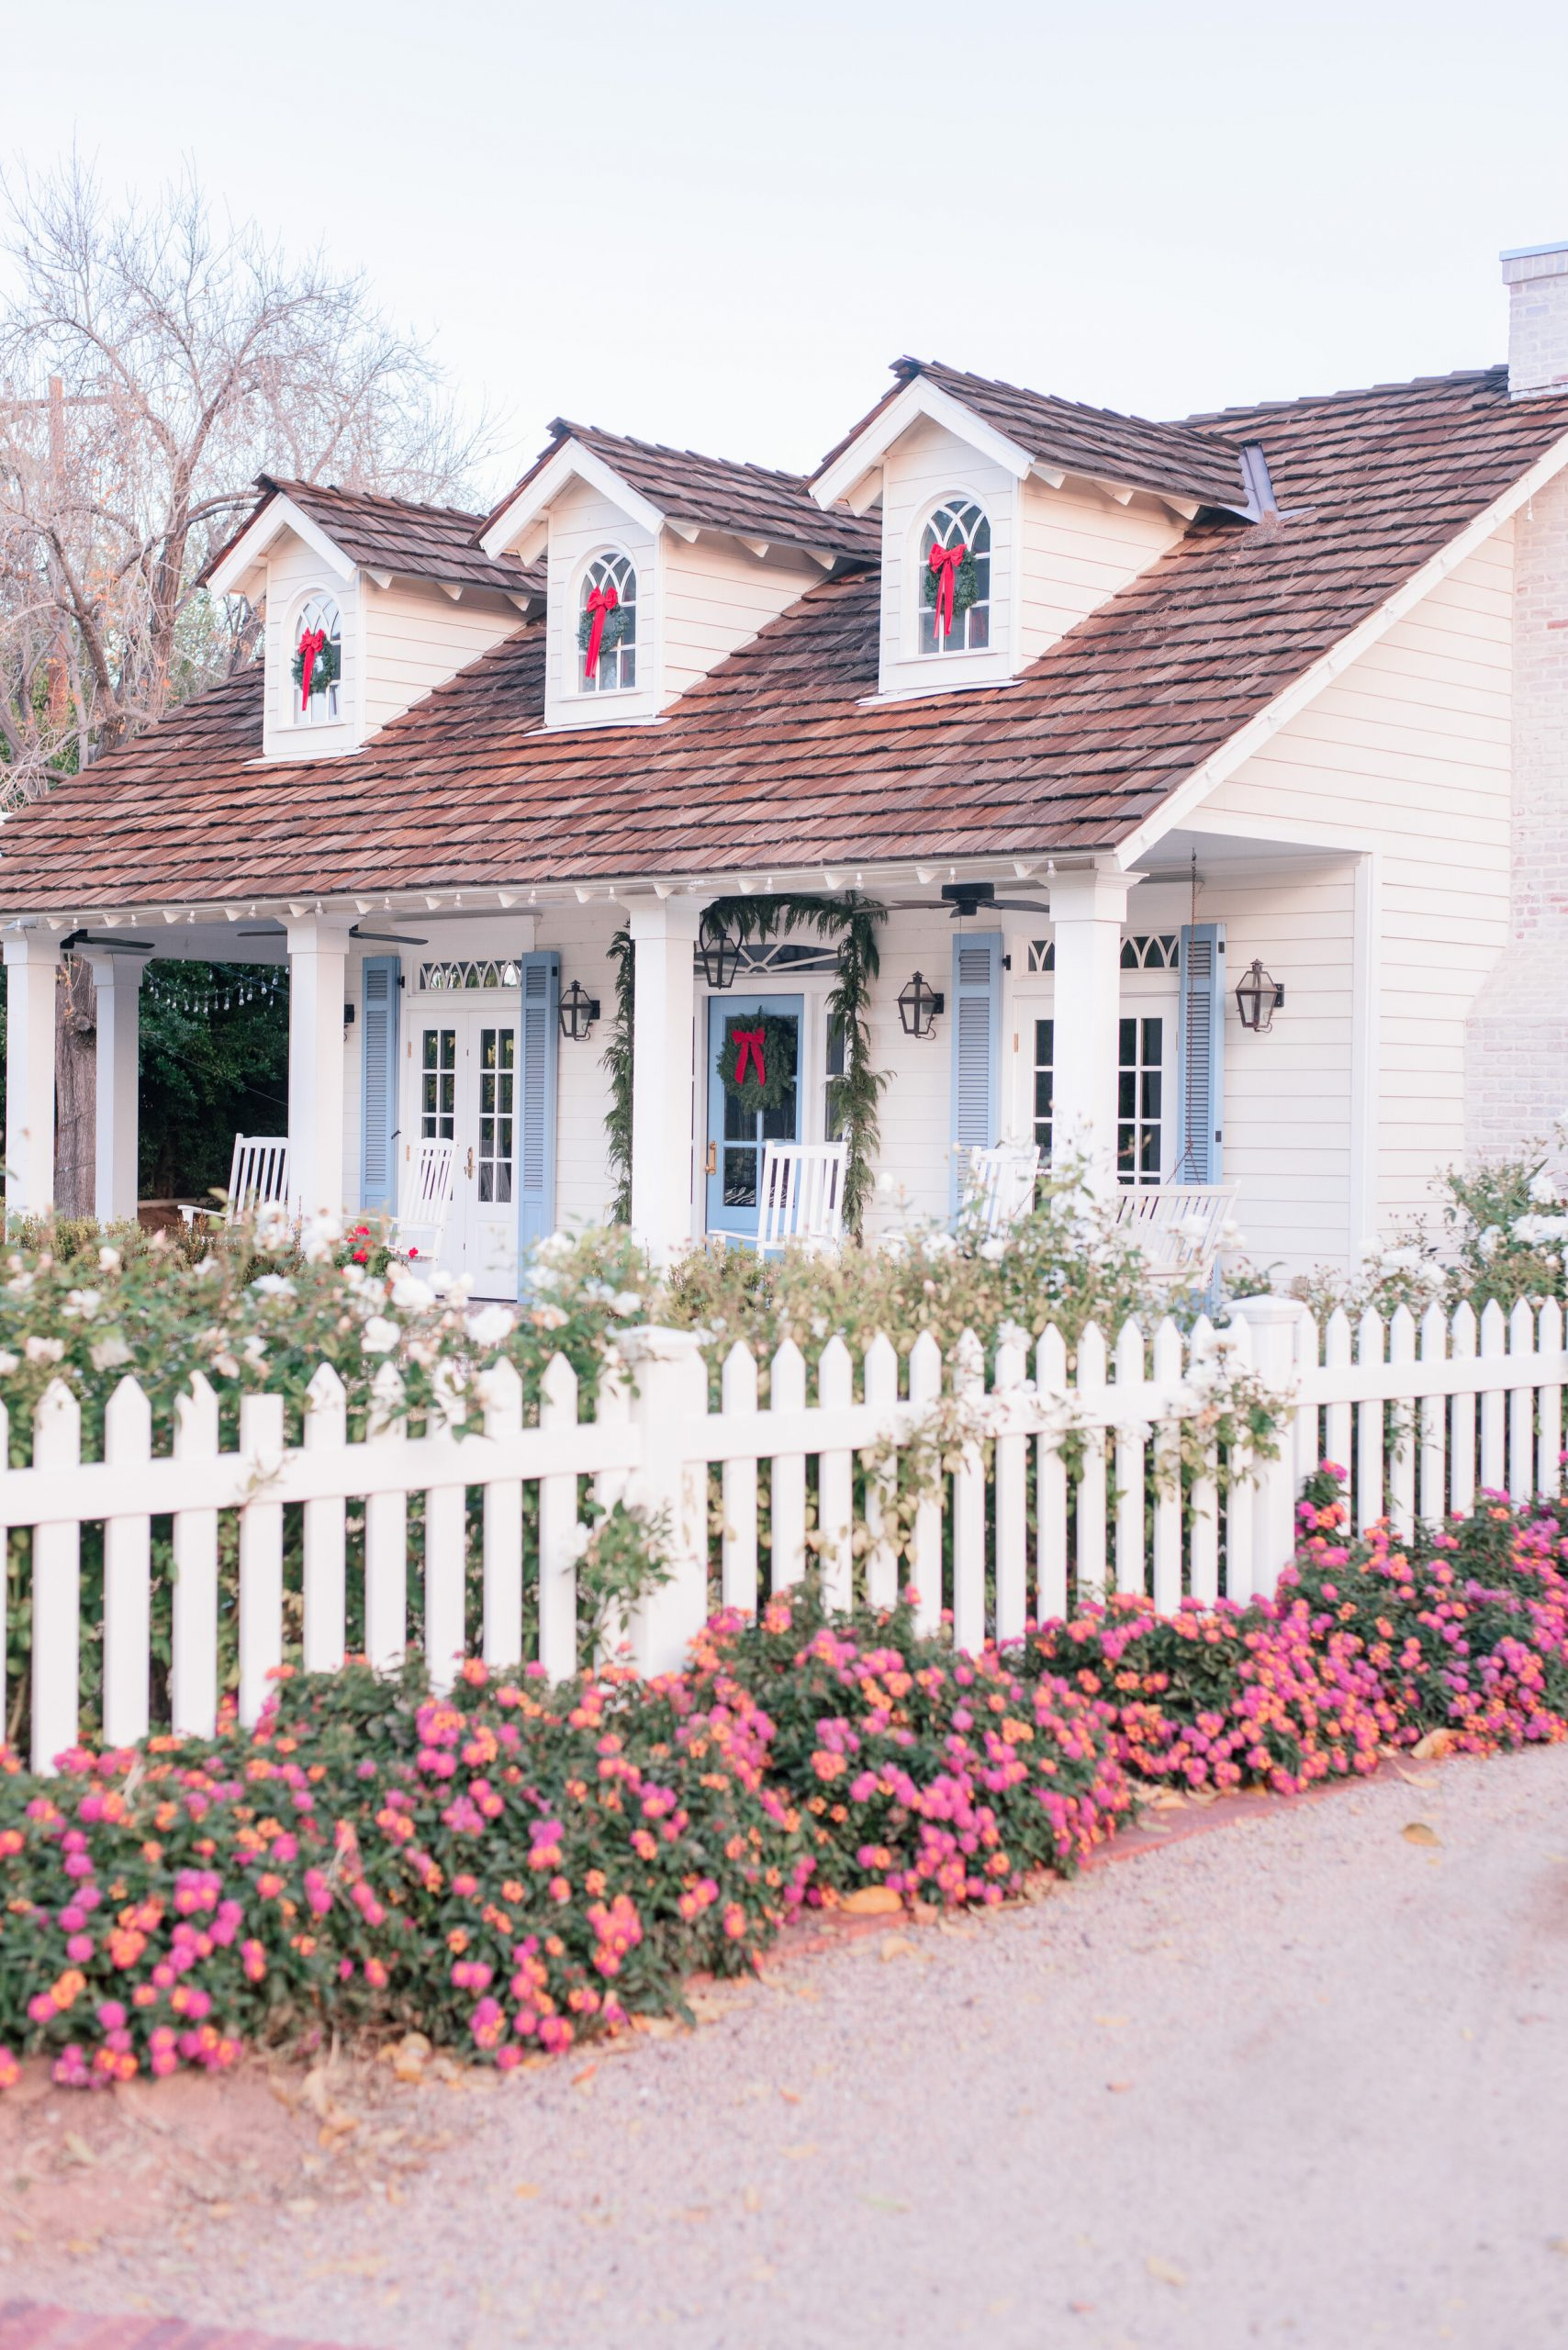 The Arcadia, Phoenix Holiday and Winter Neighborhood Tour is Here: Come See the Cozy Cottage-Farmhouse Christmas Decorations & Festive Florals!